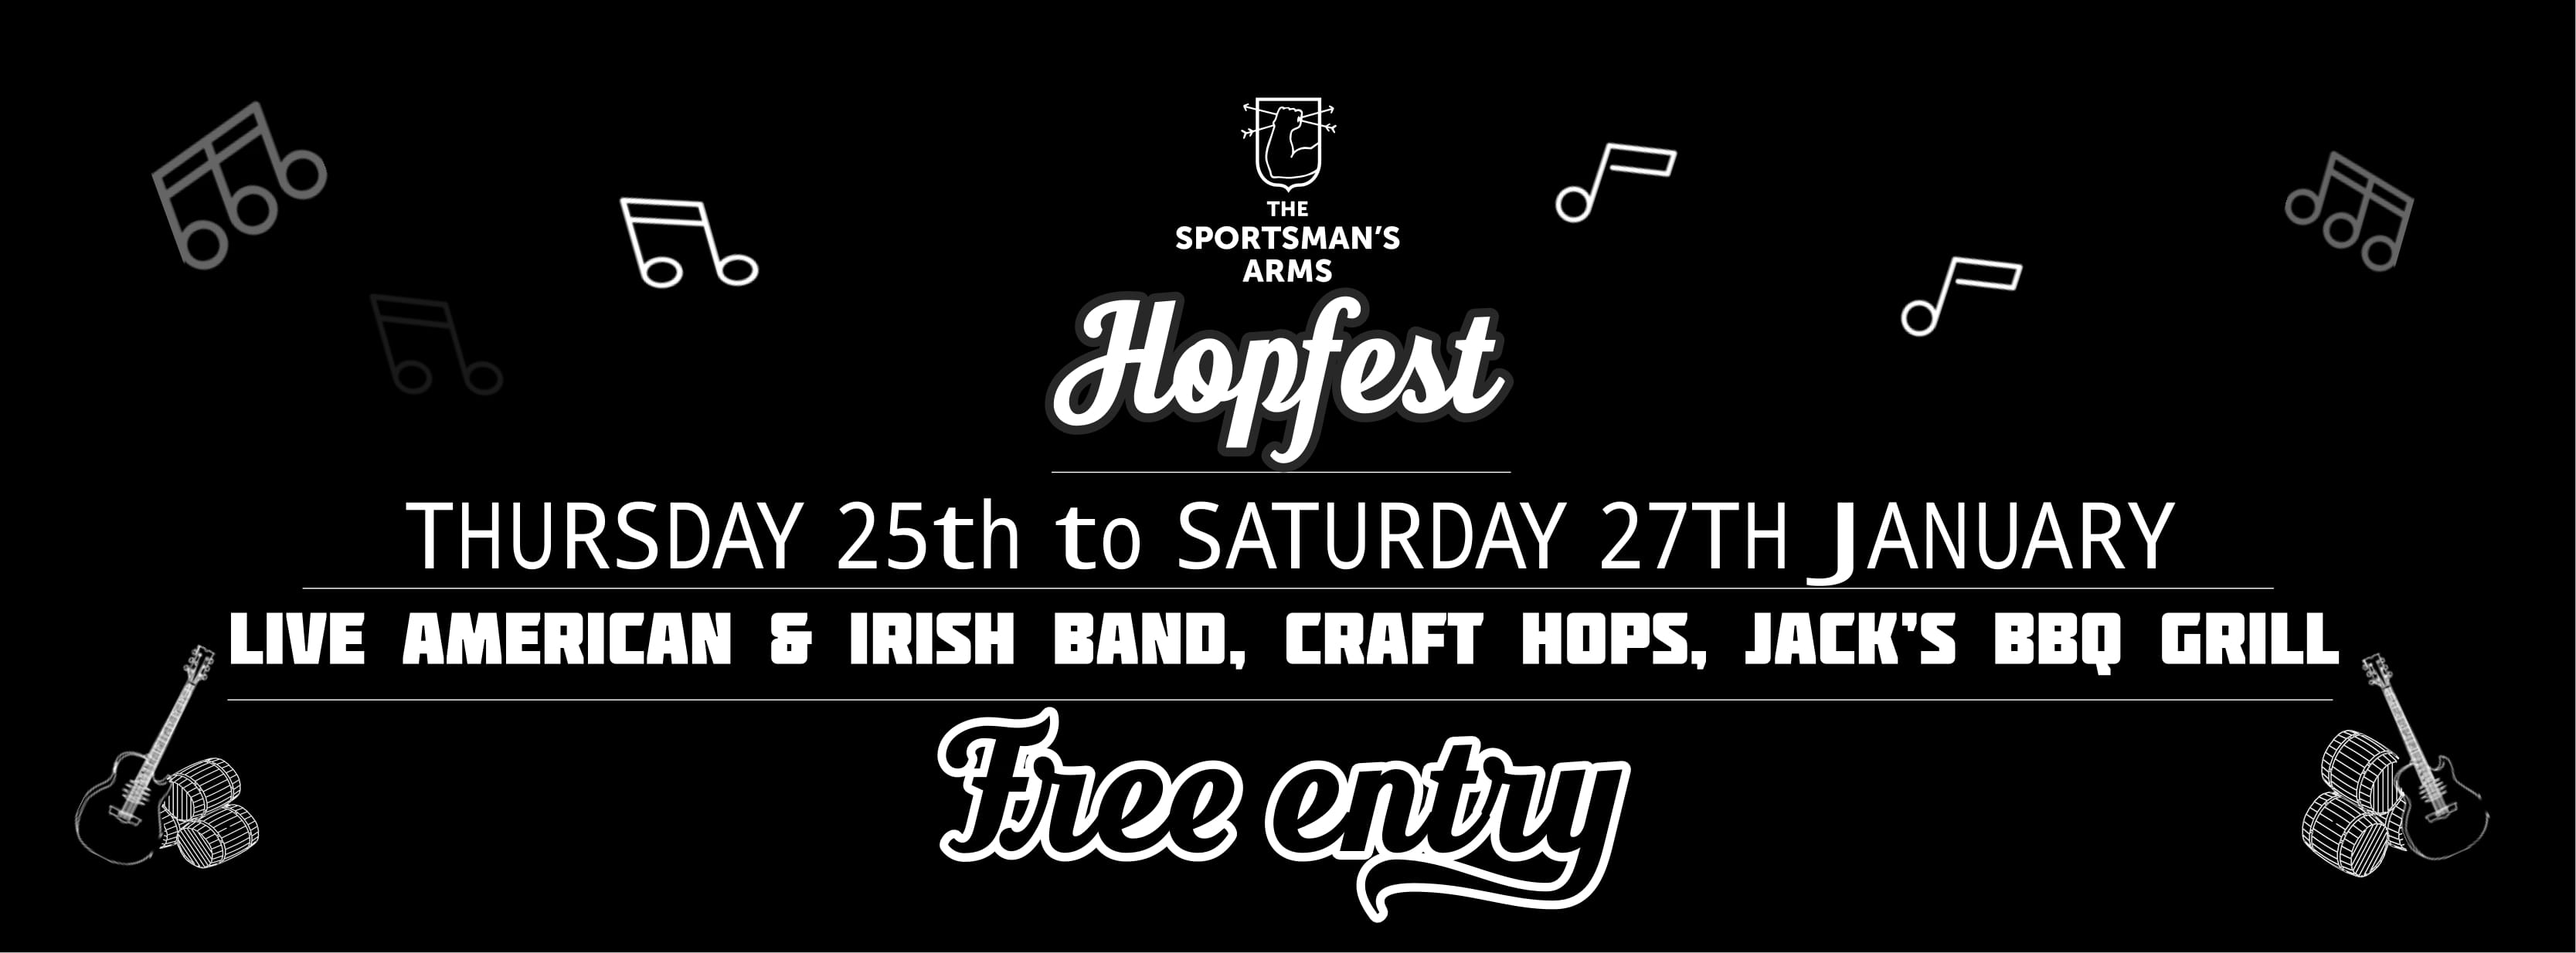 Hopfest @ The Sportsman's Arms